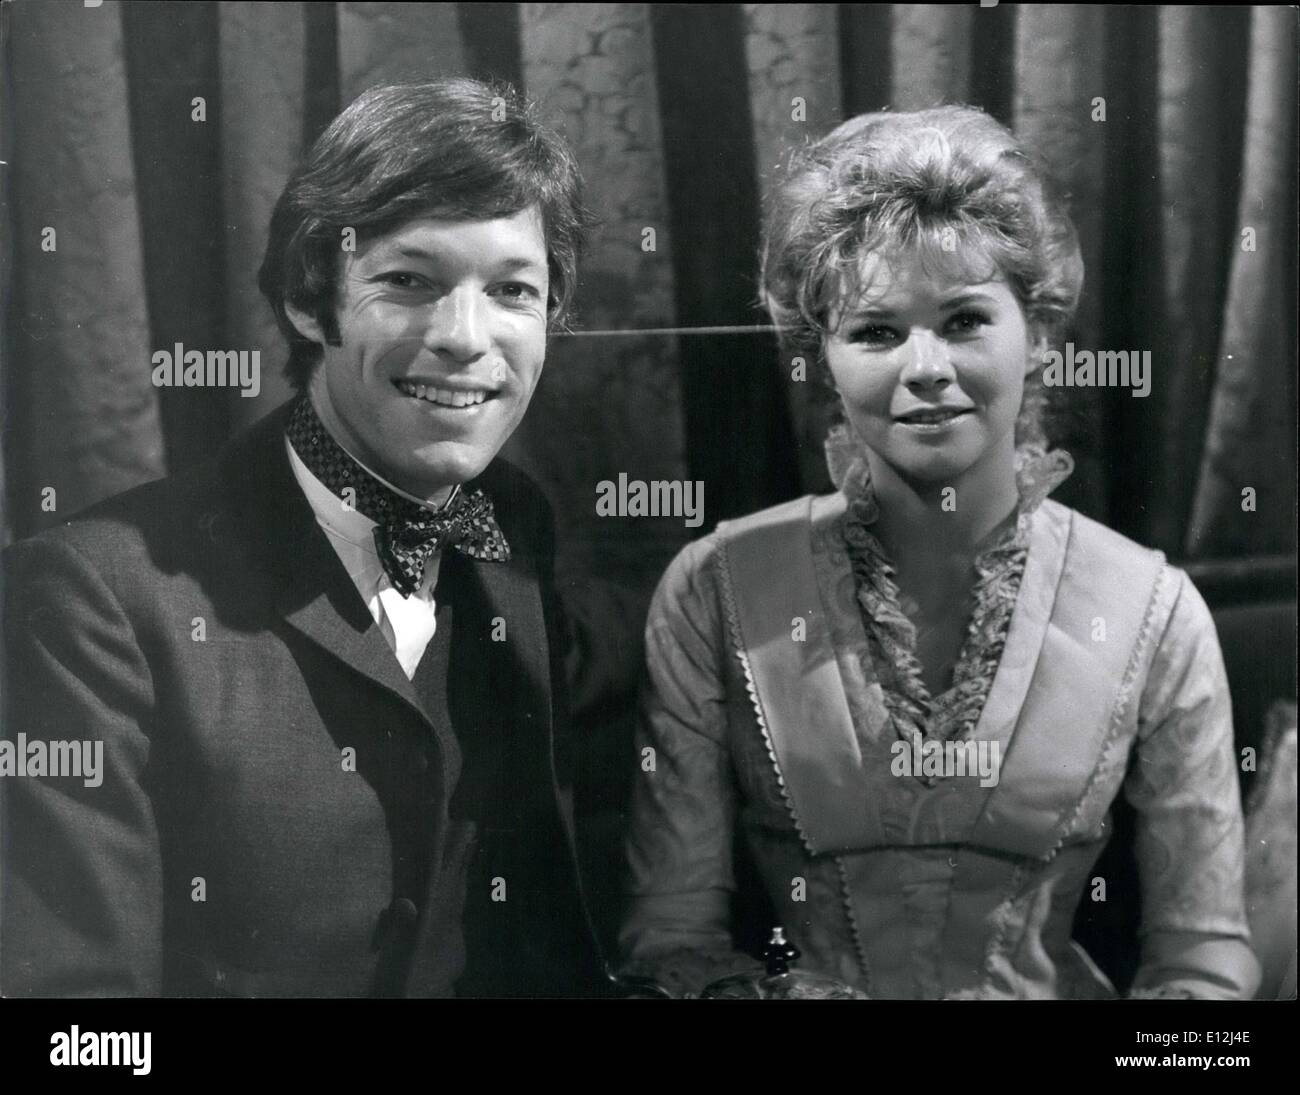 Feb. 24, 2012 - A Tonic for Dr. Kildare. it only takes a glance to diagnose that Richard Chamberlain is at last breaking away from the clean-cut, short-haired , all-American boy image of his Dr. Kildare series. His hair, once so neat now curls slightly onto his collar - the crisp white coat is replaced by Regency-style clothes. The reason - Richard Chamberlain is playing in a six part B.B.C - Stock Image